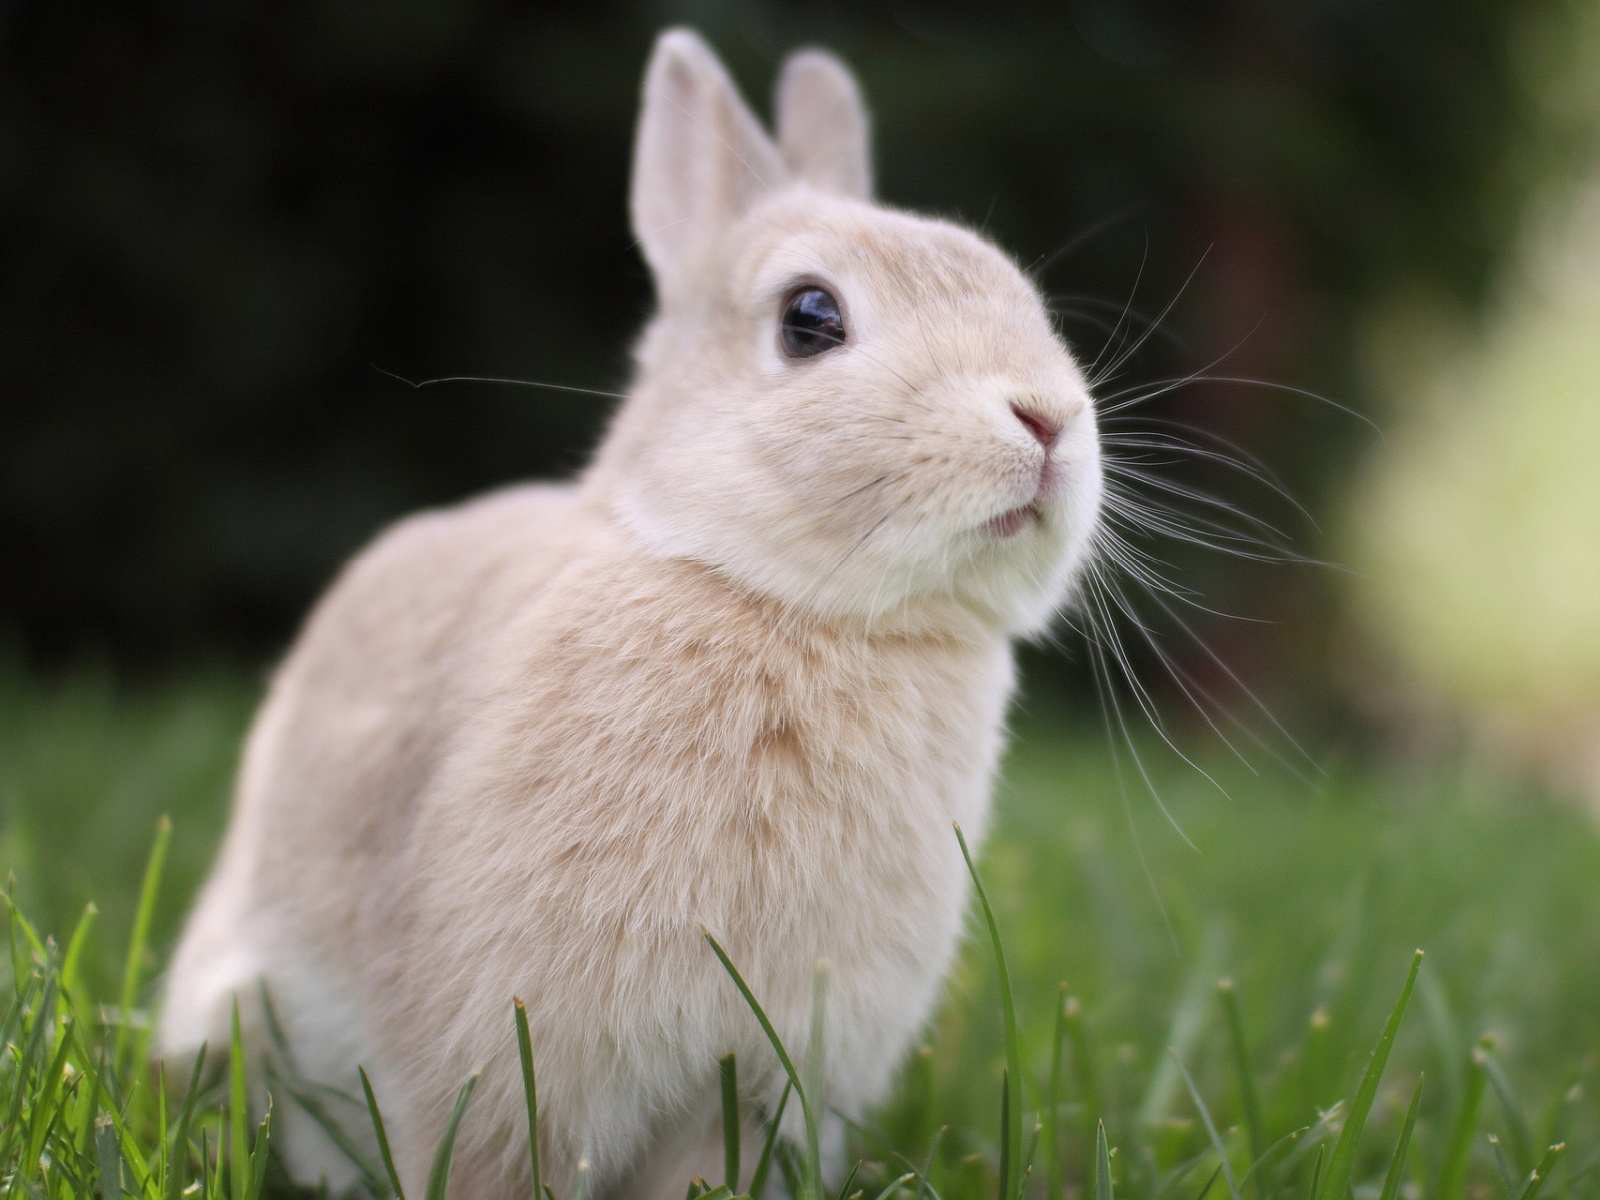 Cute Bunny Pictures